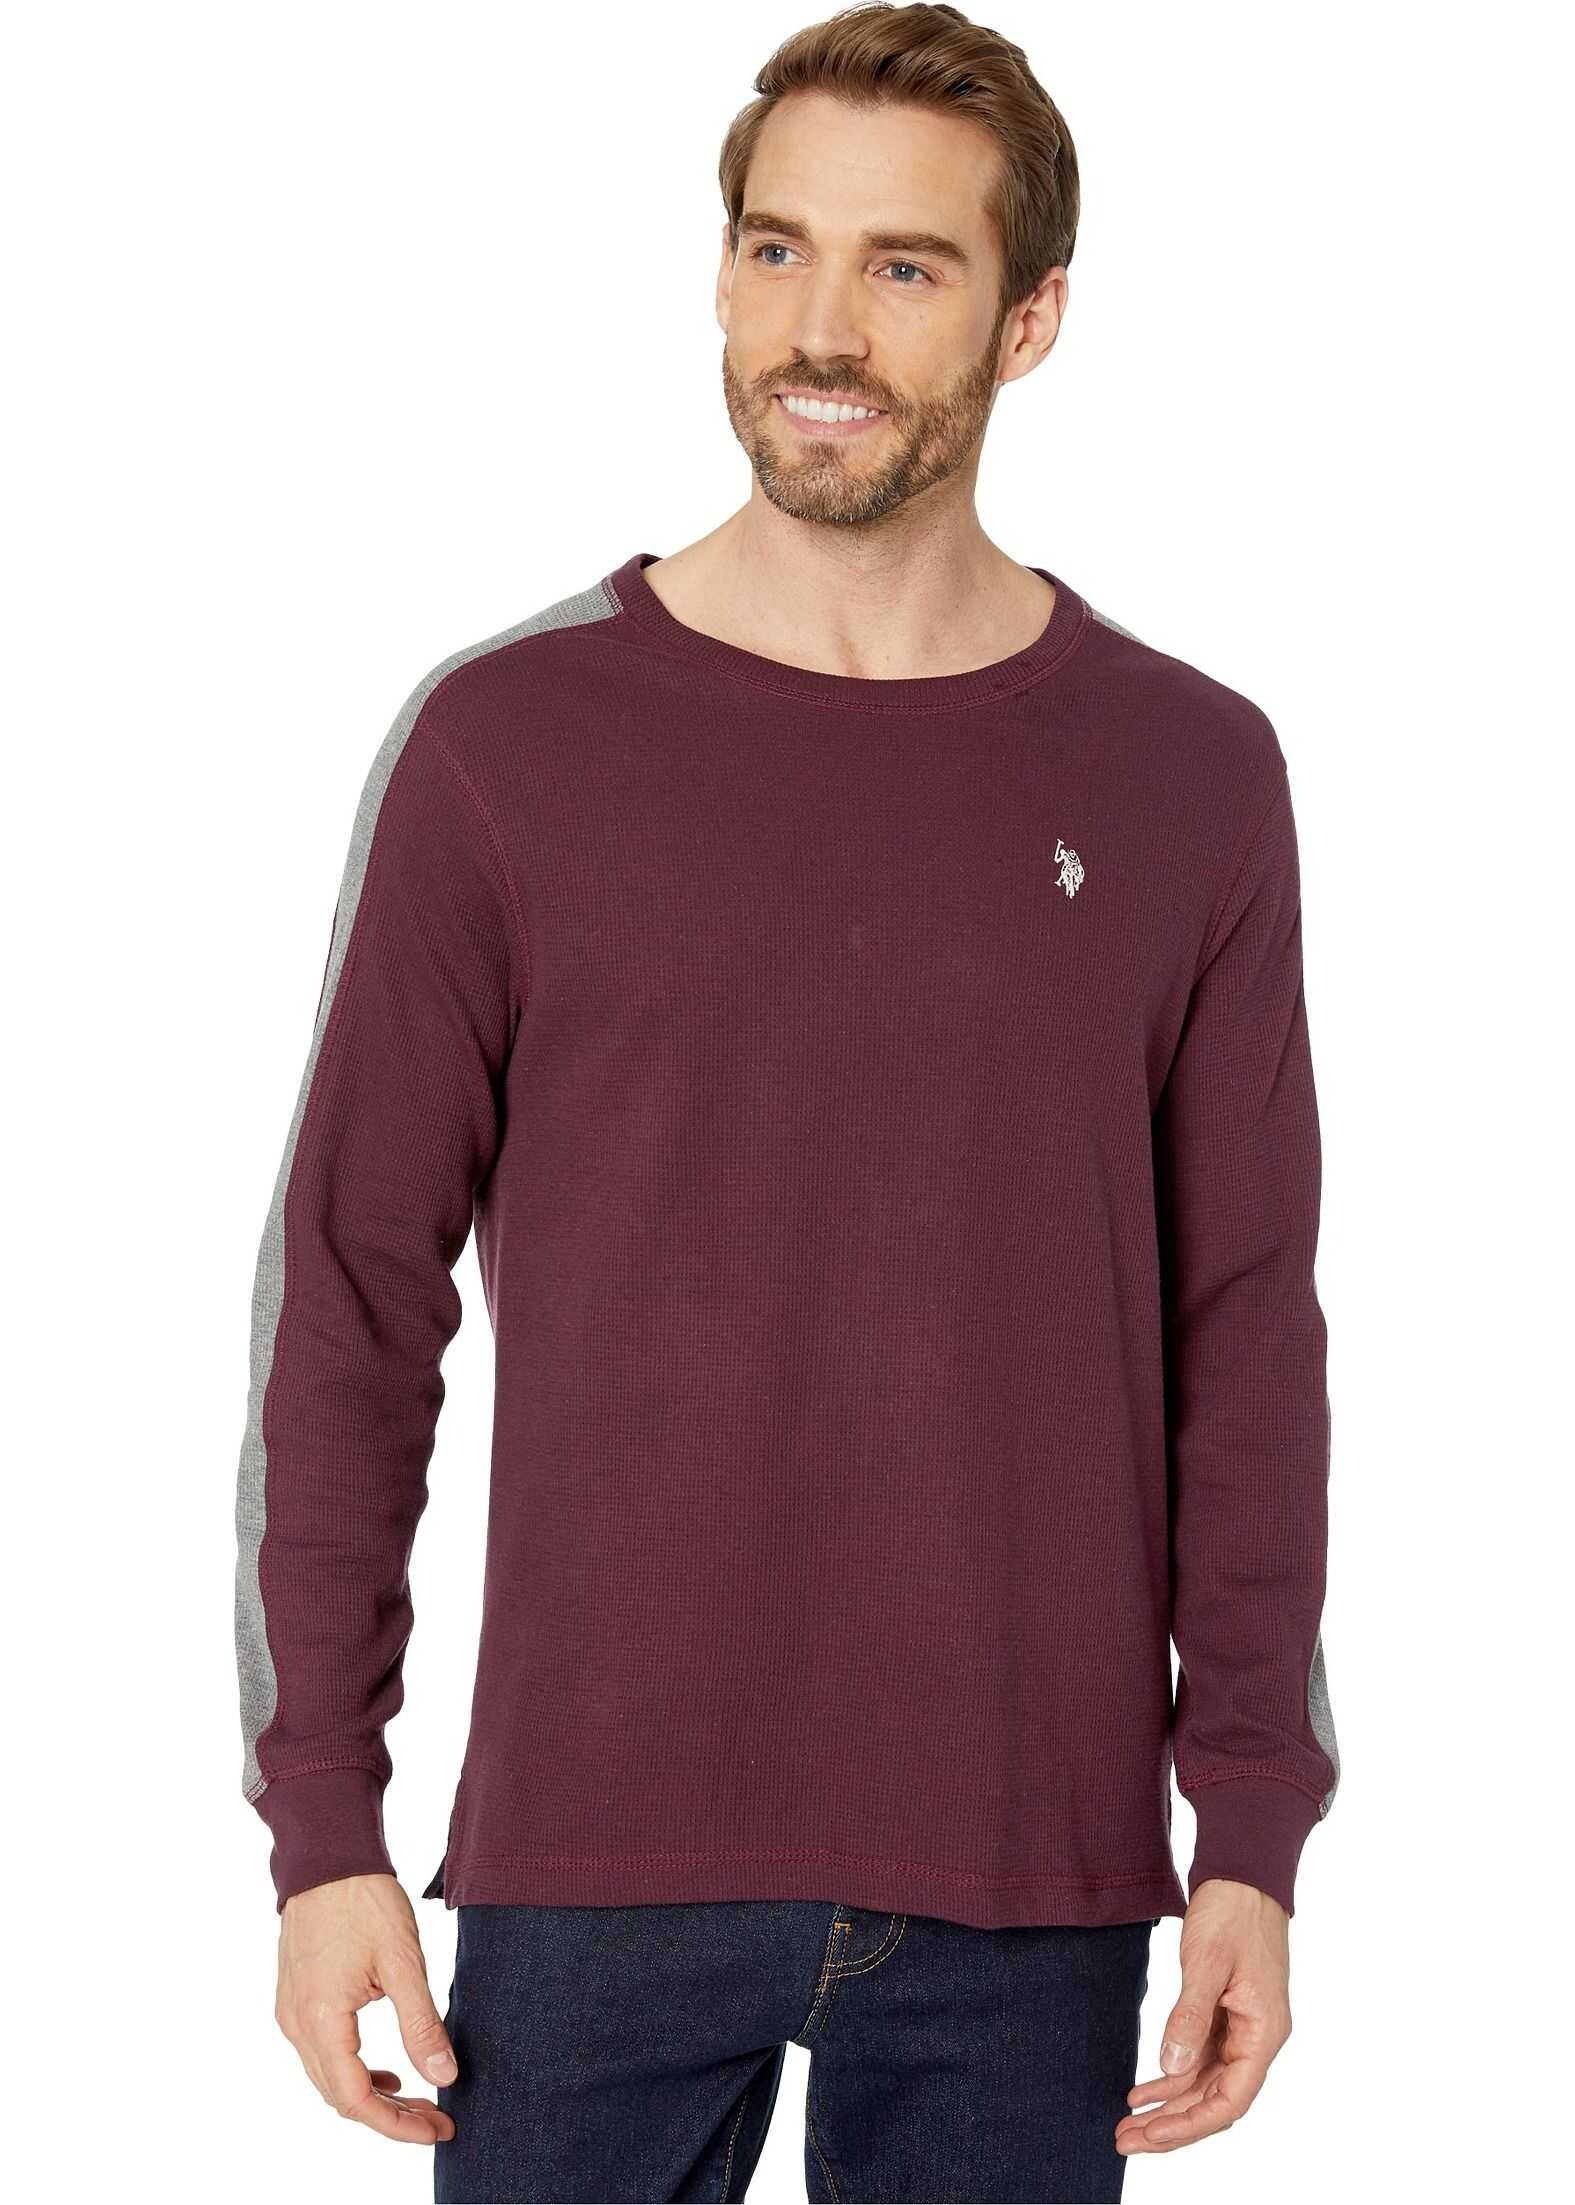 U.S. POLO ASSN. Arm Color Block Thermal Crew Port Wine